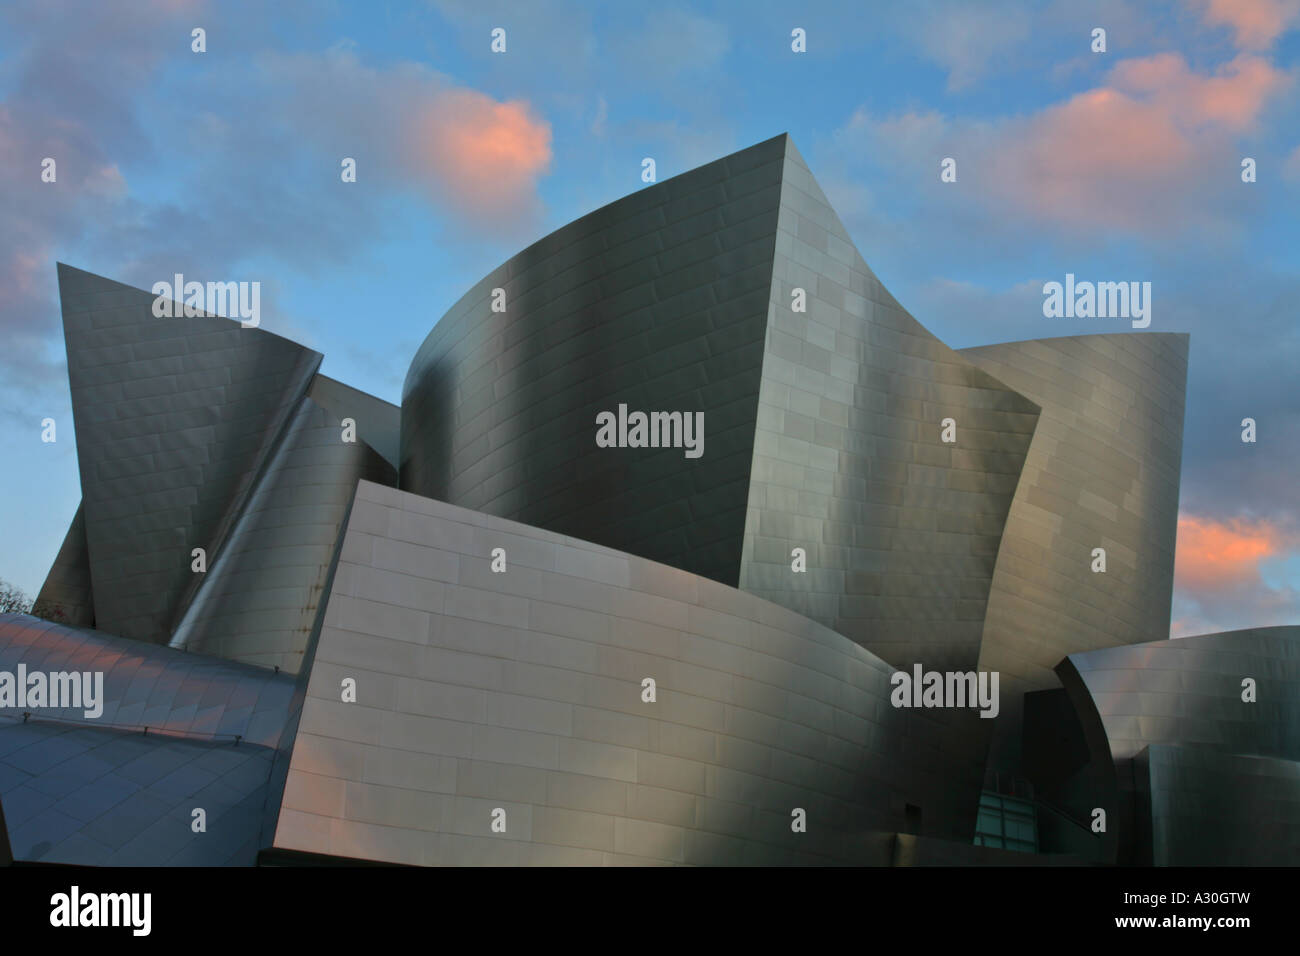 Exterior Walt Disney Concert Hall Downtown Los Angeles Los Angeles County California United States - Stock Image